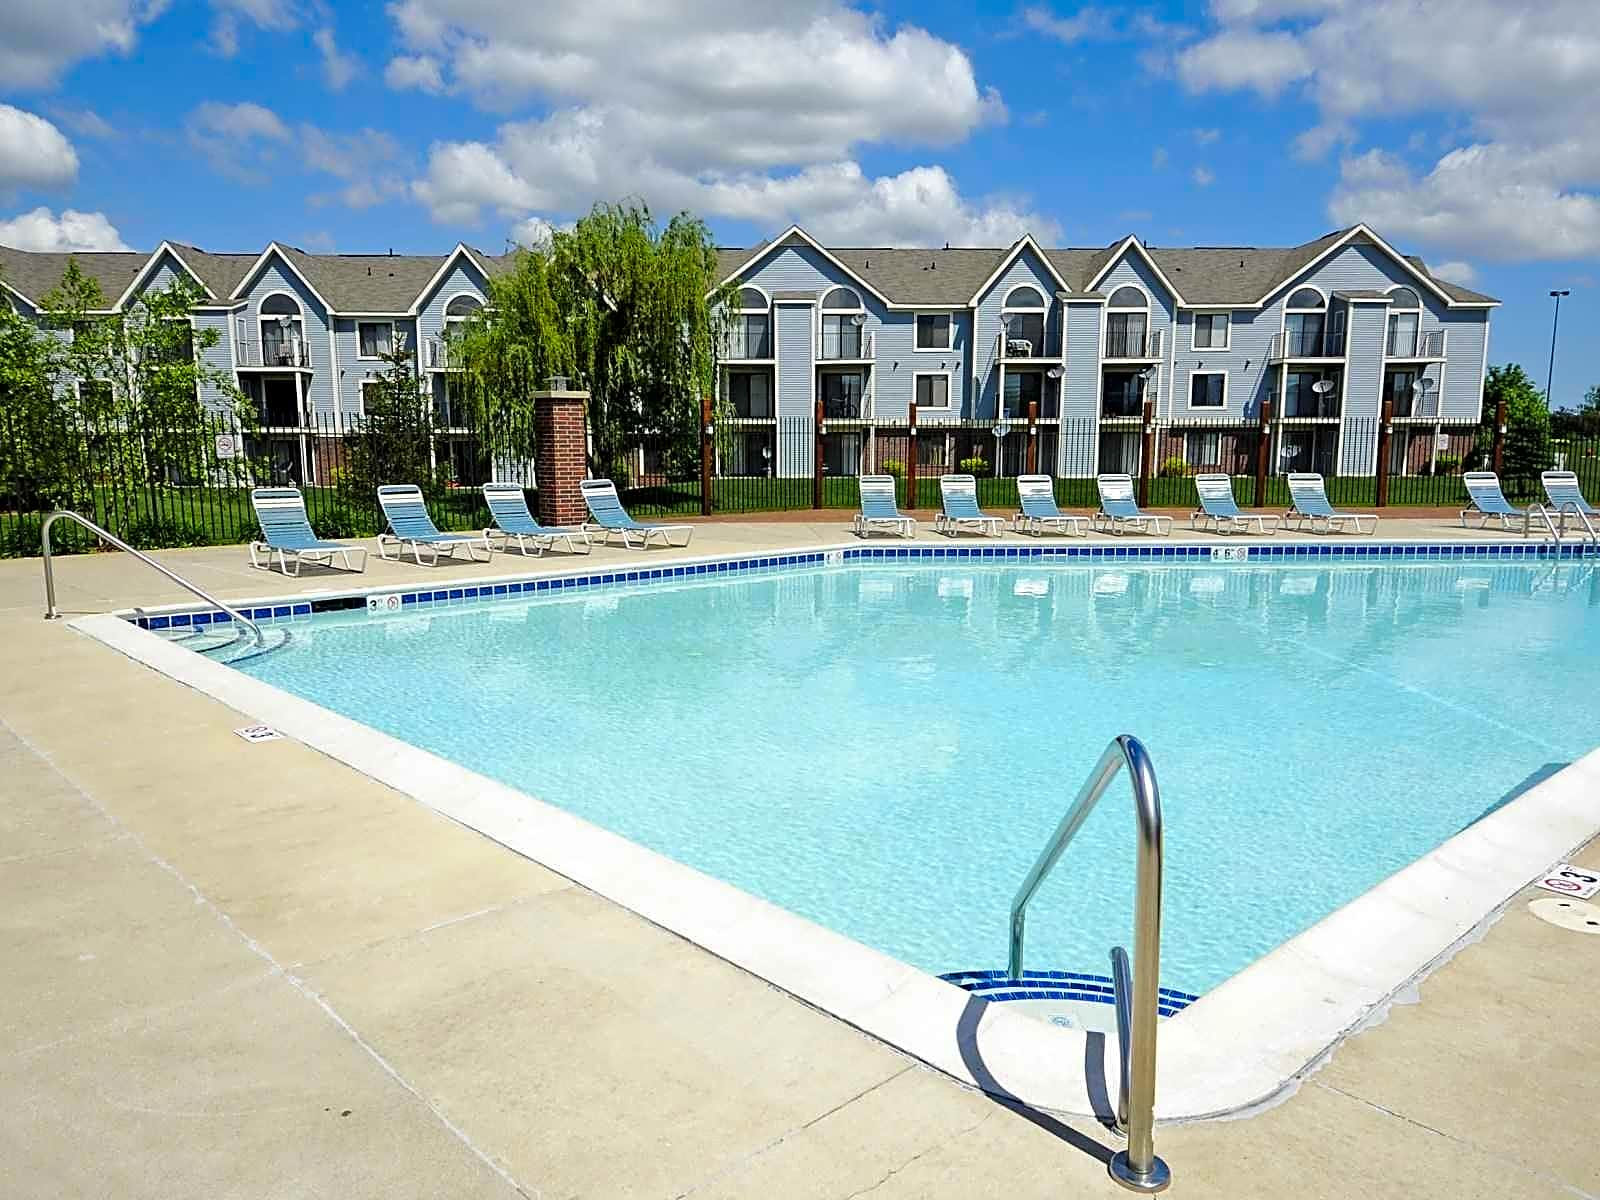 Huntington Cove Apartments Merrillville In 46410 Iphone Wallpapers Free Beautiful  HD Wallpapers, Images Over 1000+ [getprihce.gq]